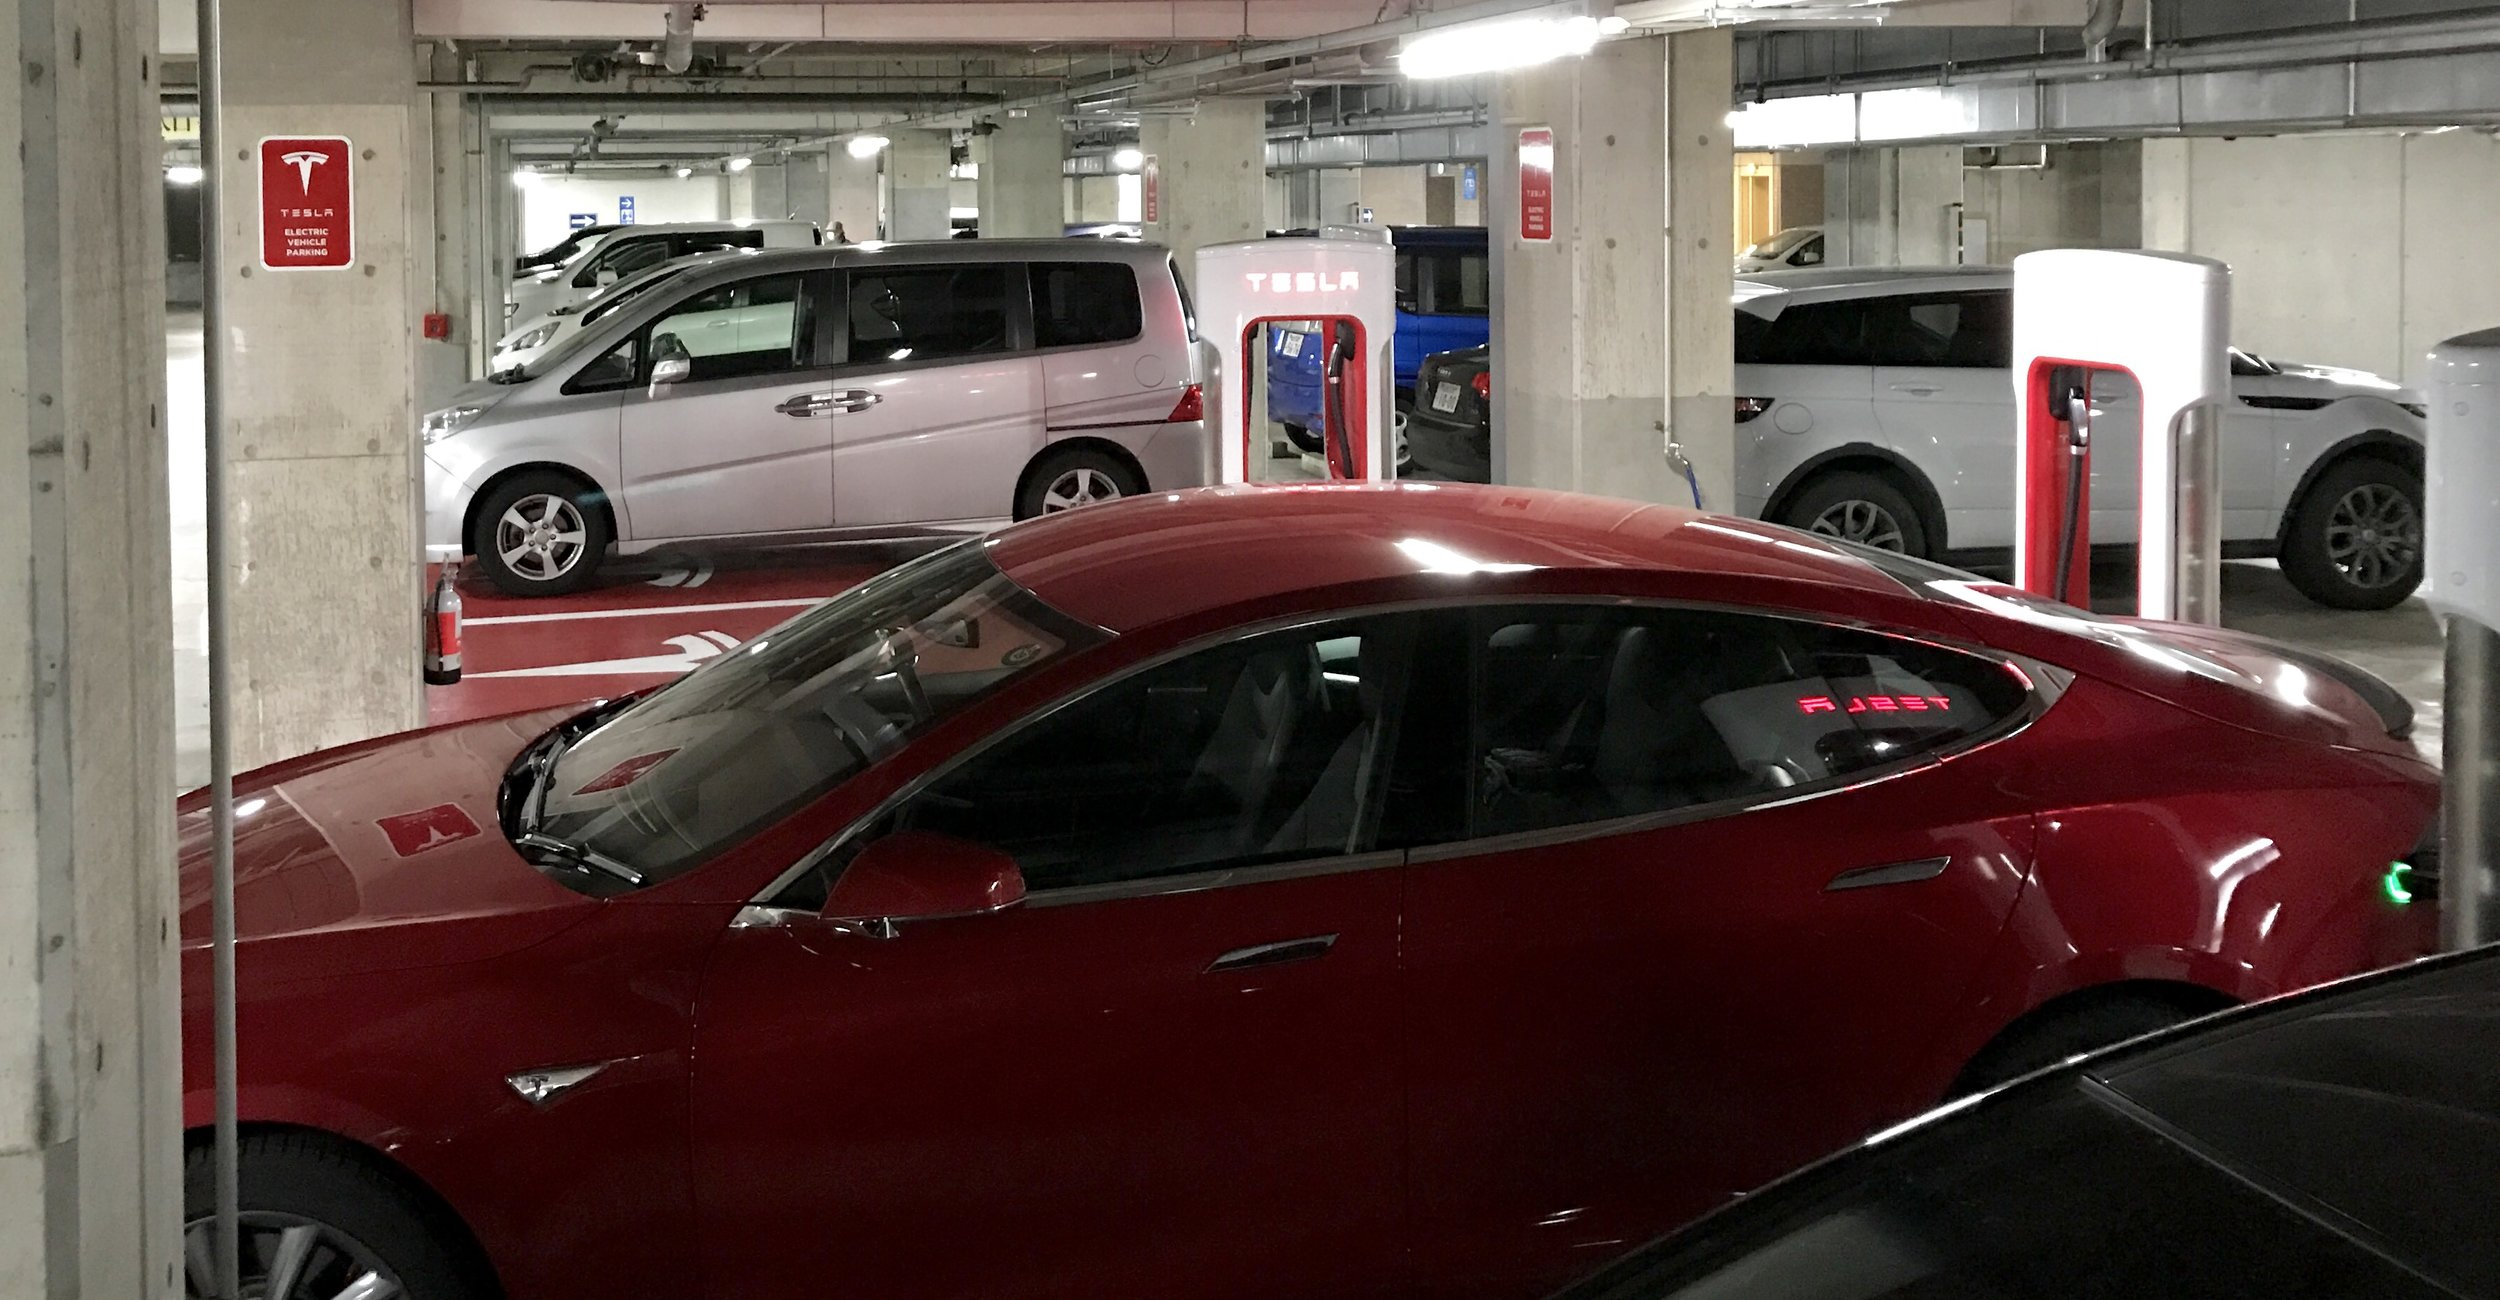 First time to see a Supercharger stall ICE'd (a gas car parked in an EV spot) in Japan